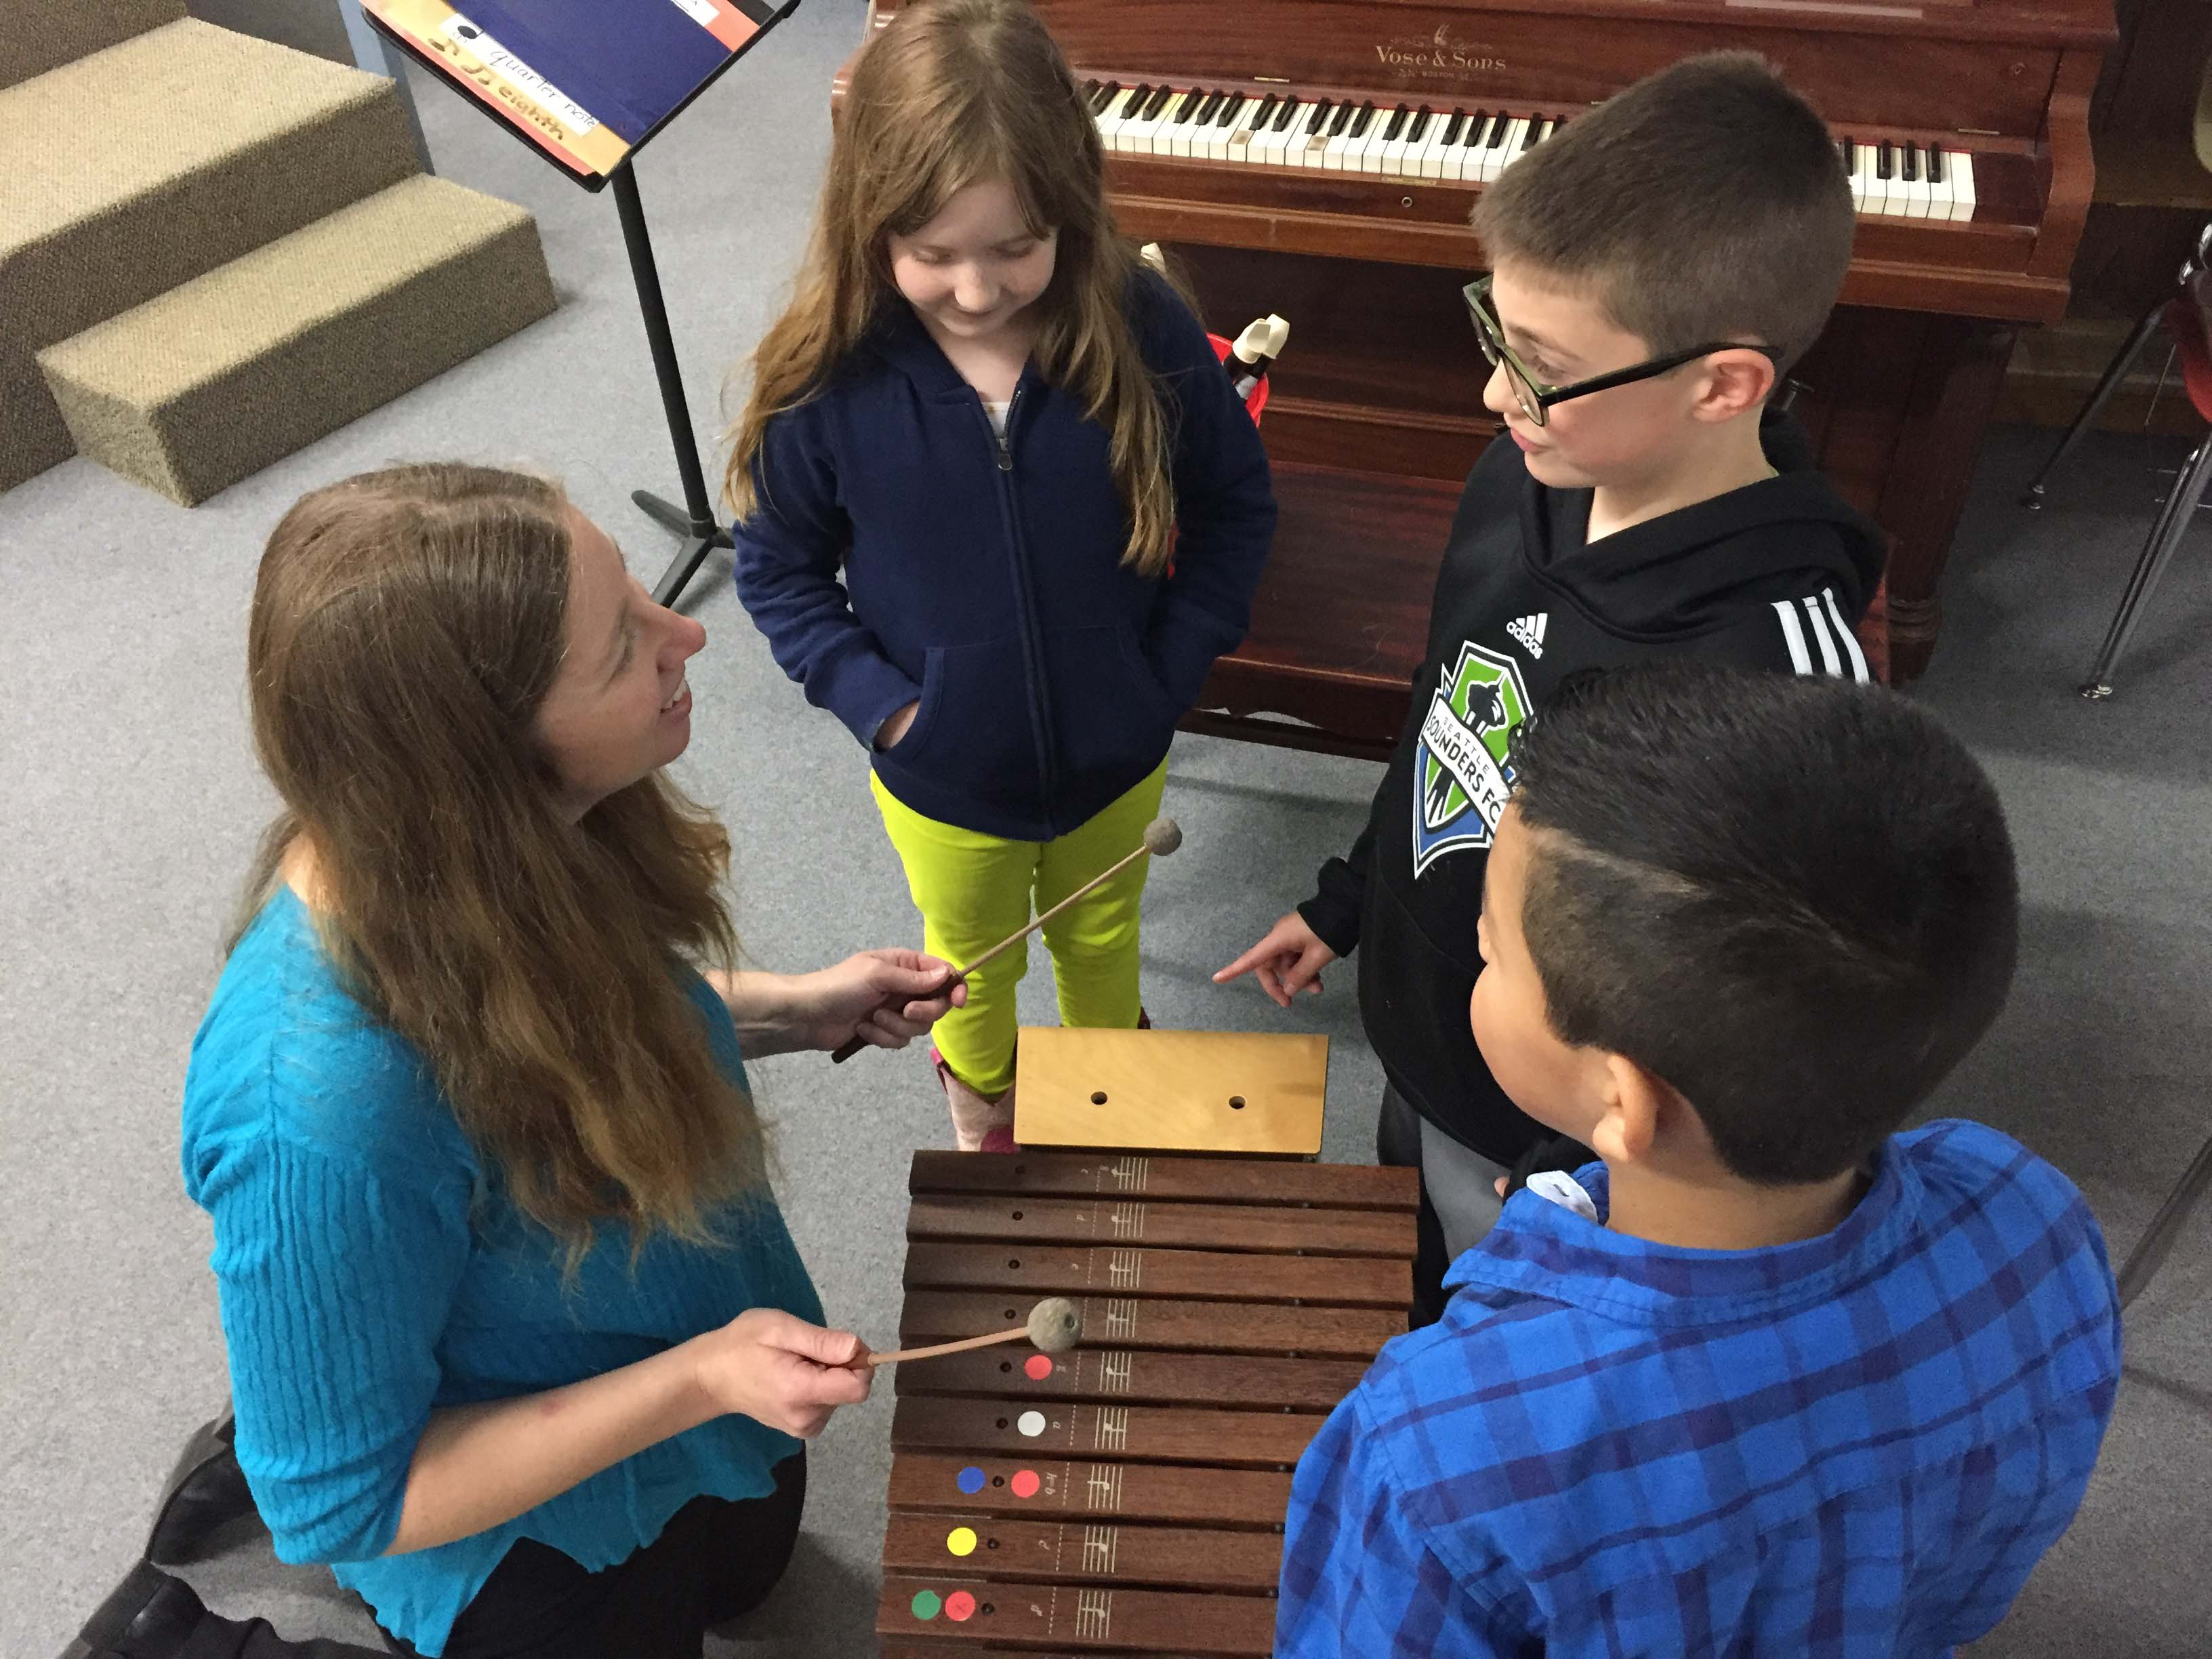 Musician mom Katie Pool volunteers her time to bring music class to Silver Crest every Wednesday.